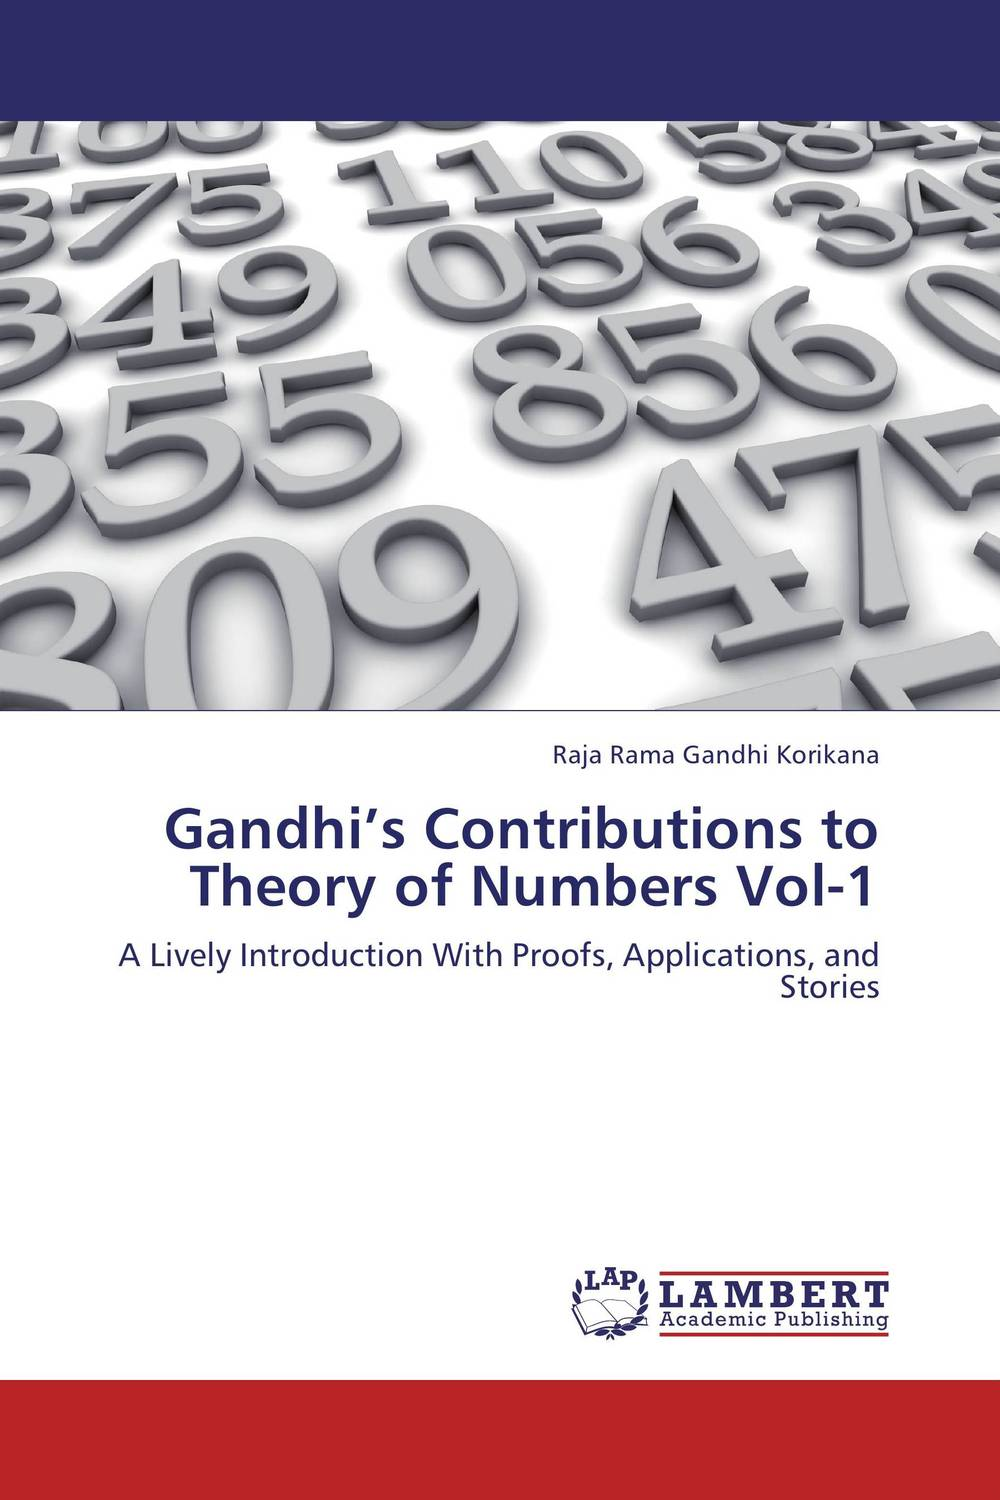 Gandhi's Contributions to Theory of Numbers Vol-1 samuel richardson clarissa or the history of a young lady vol 8